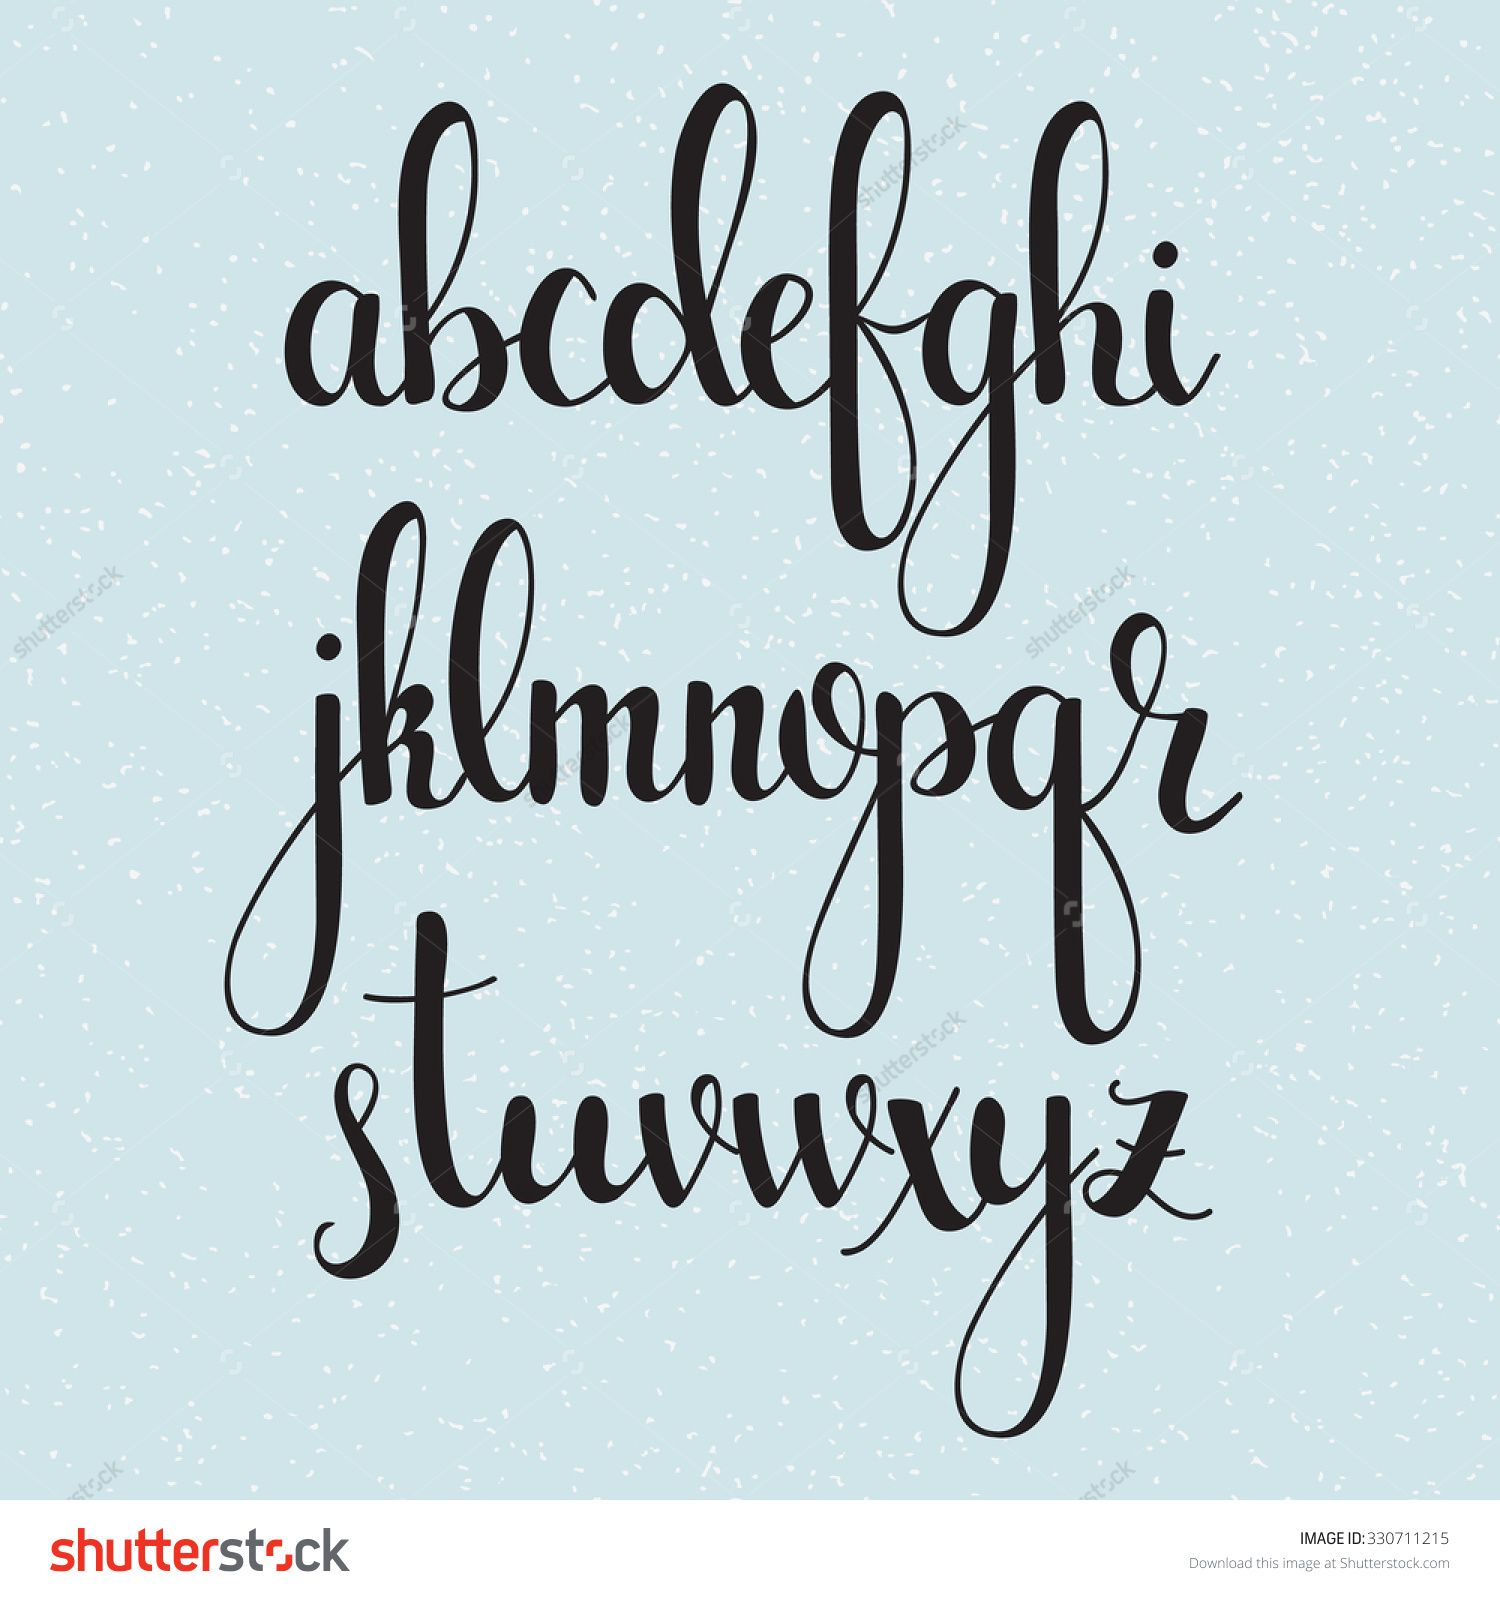 Modern Calligraphy Online Generator Cute Cursive Font Tutlin Ayodhya Co